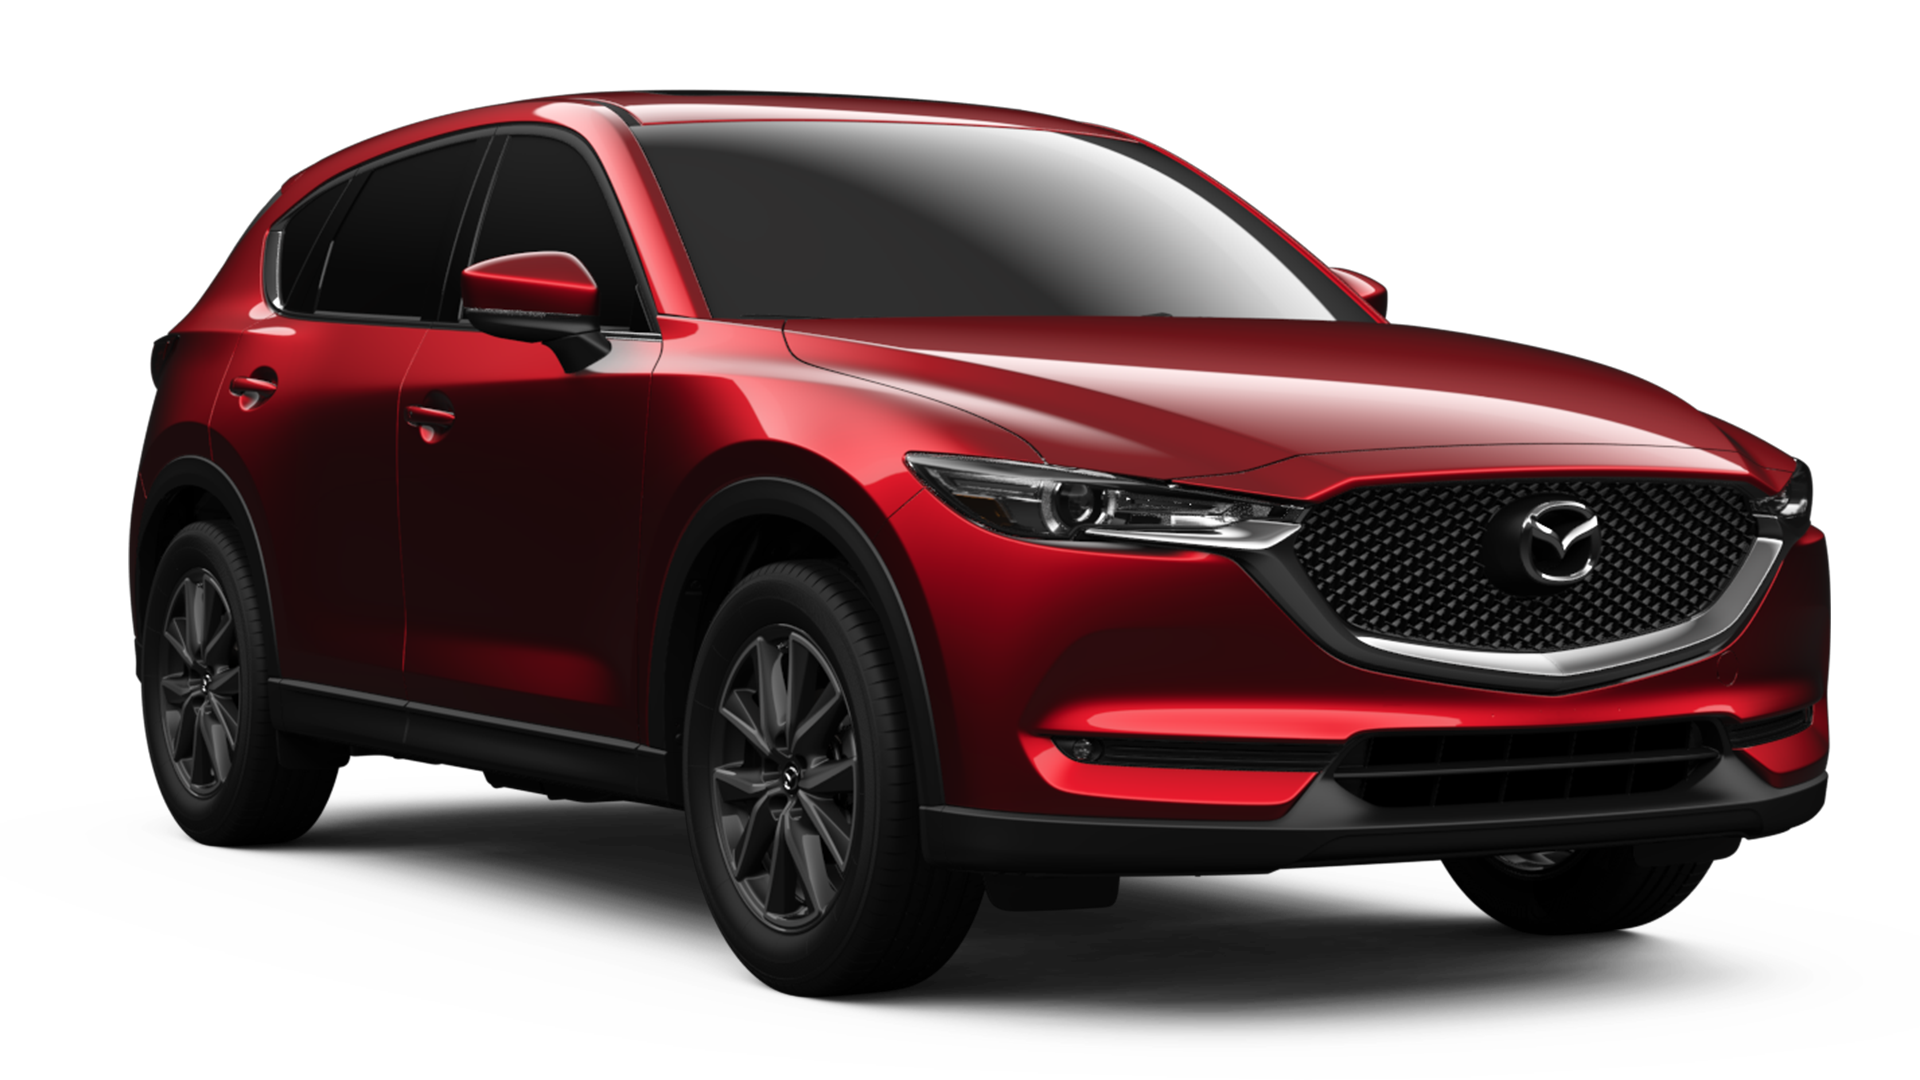 Mazda Build And Price Canada >> 2017 CX-5 | 5-seat SUV | Mazda Canada